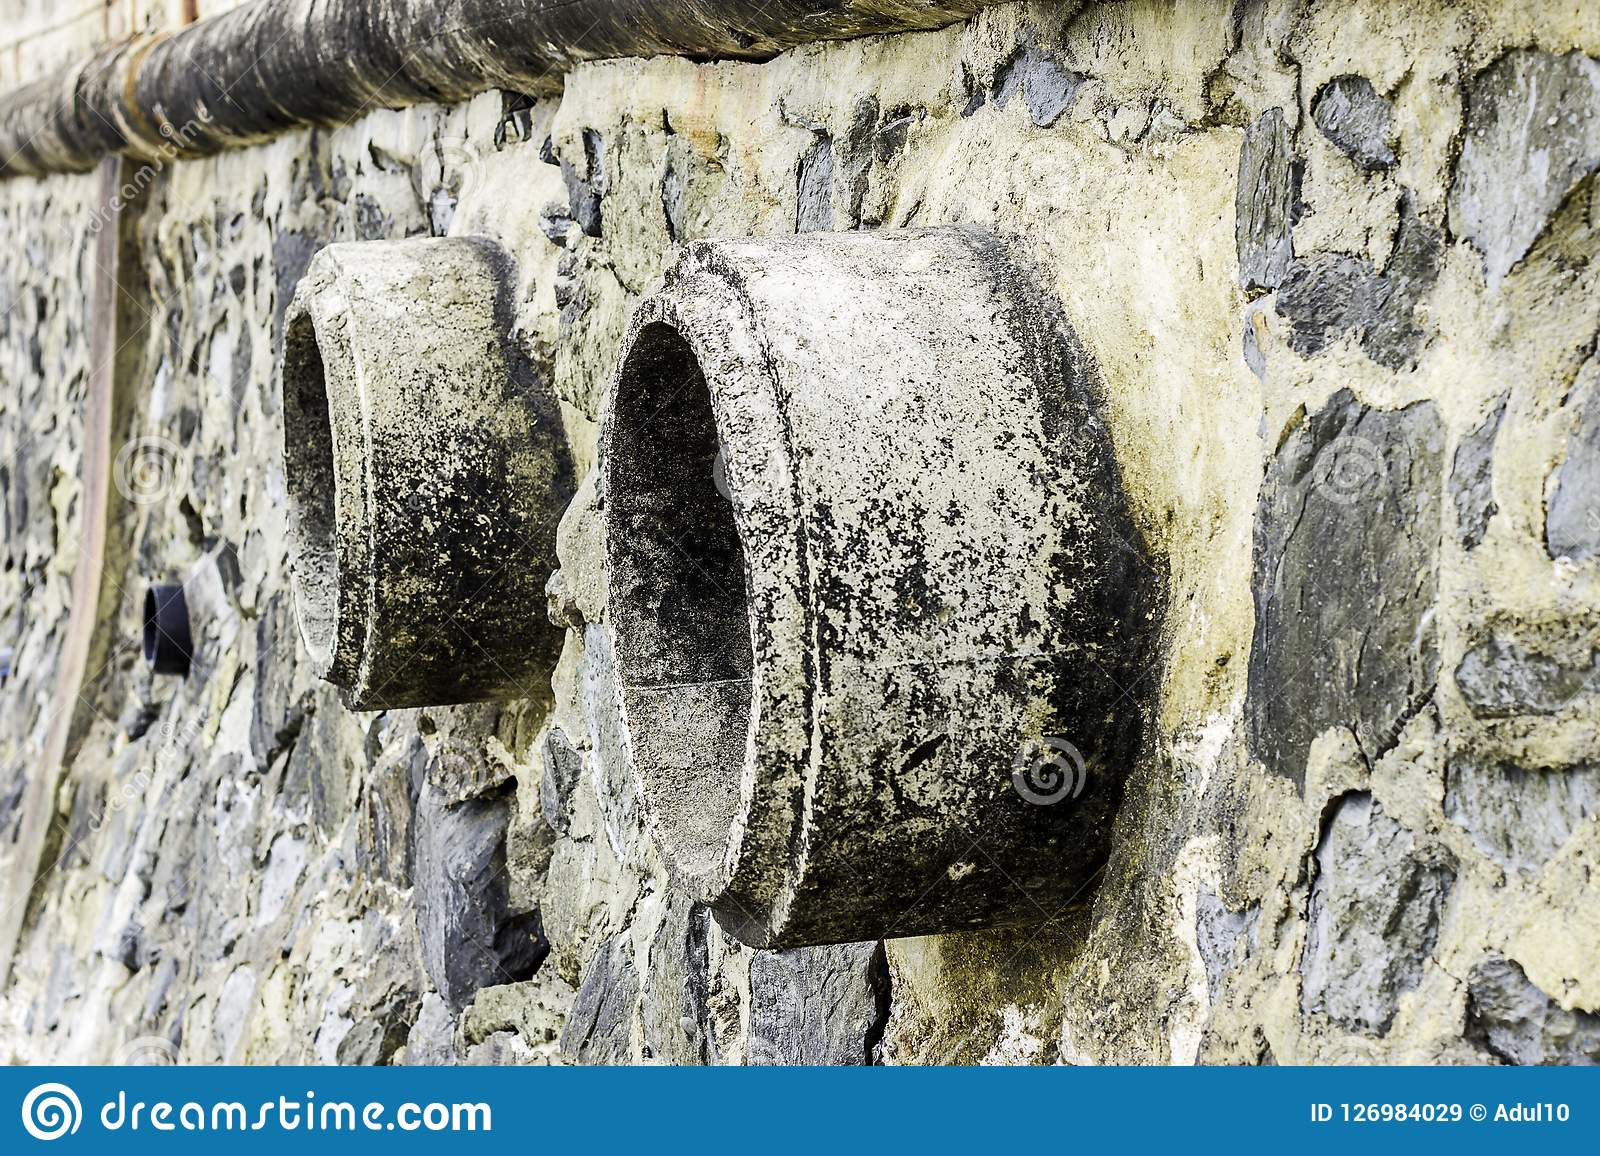 Rust And Corrosion In The Pipe And Metal Skin Corrosion Of